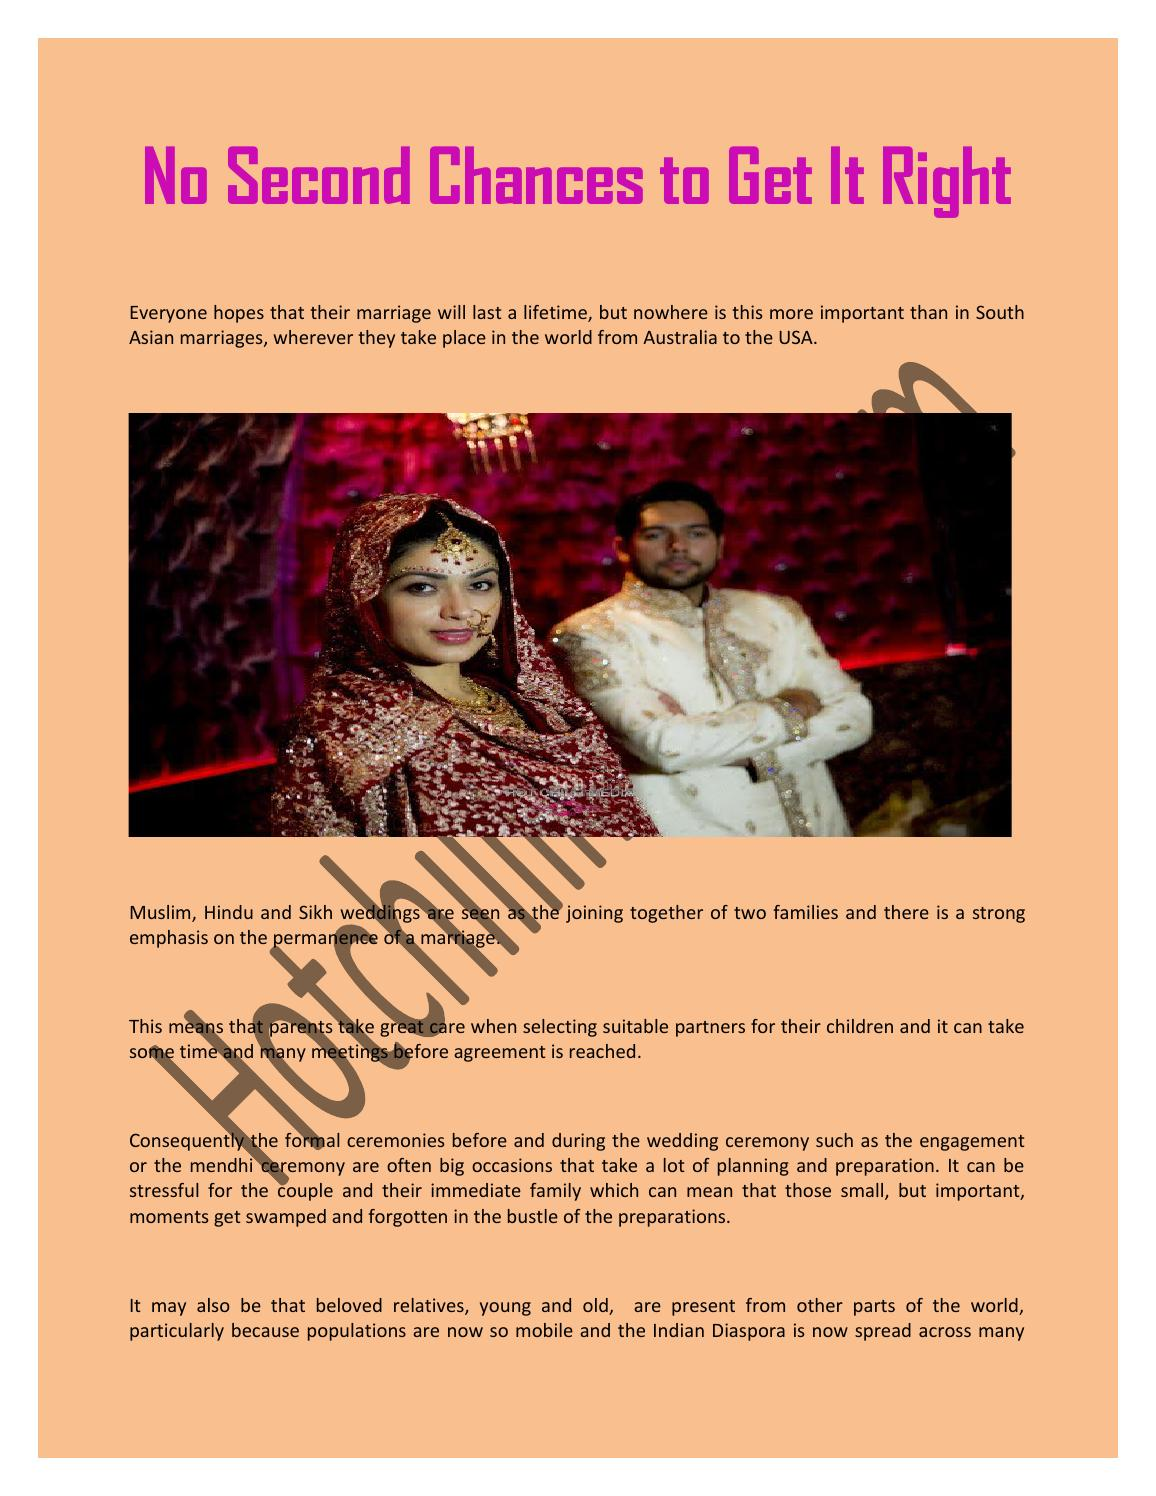 No Second Chances to Get It Right by hotchillimedia - issuu